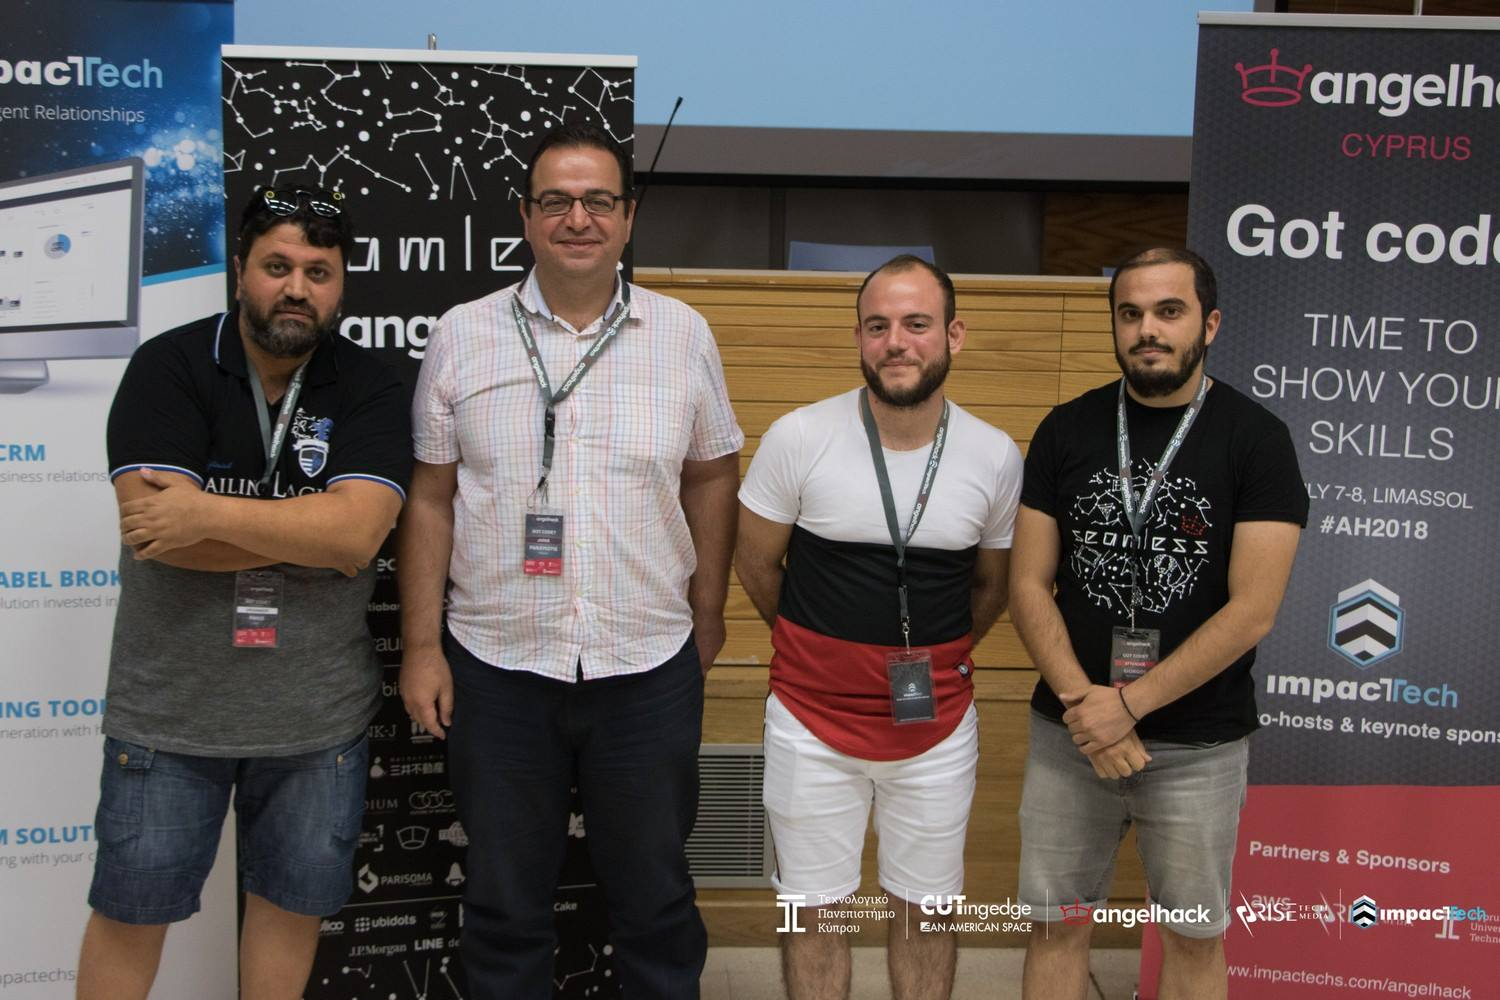 angelhack july2018 1